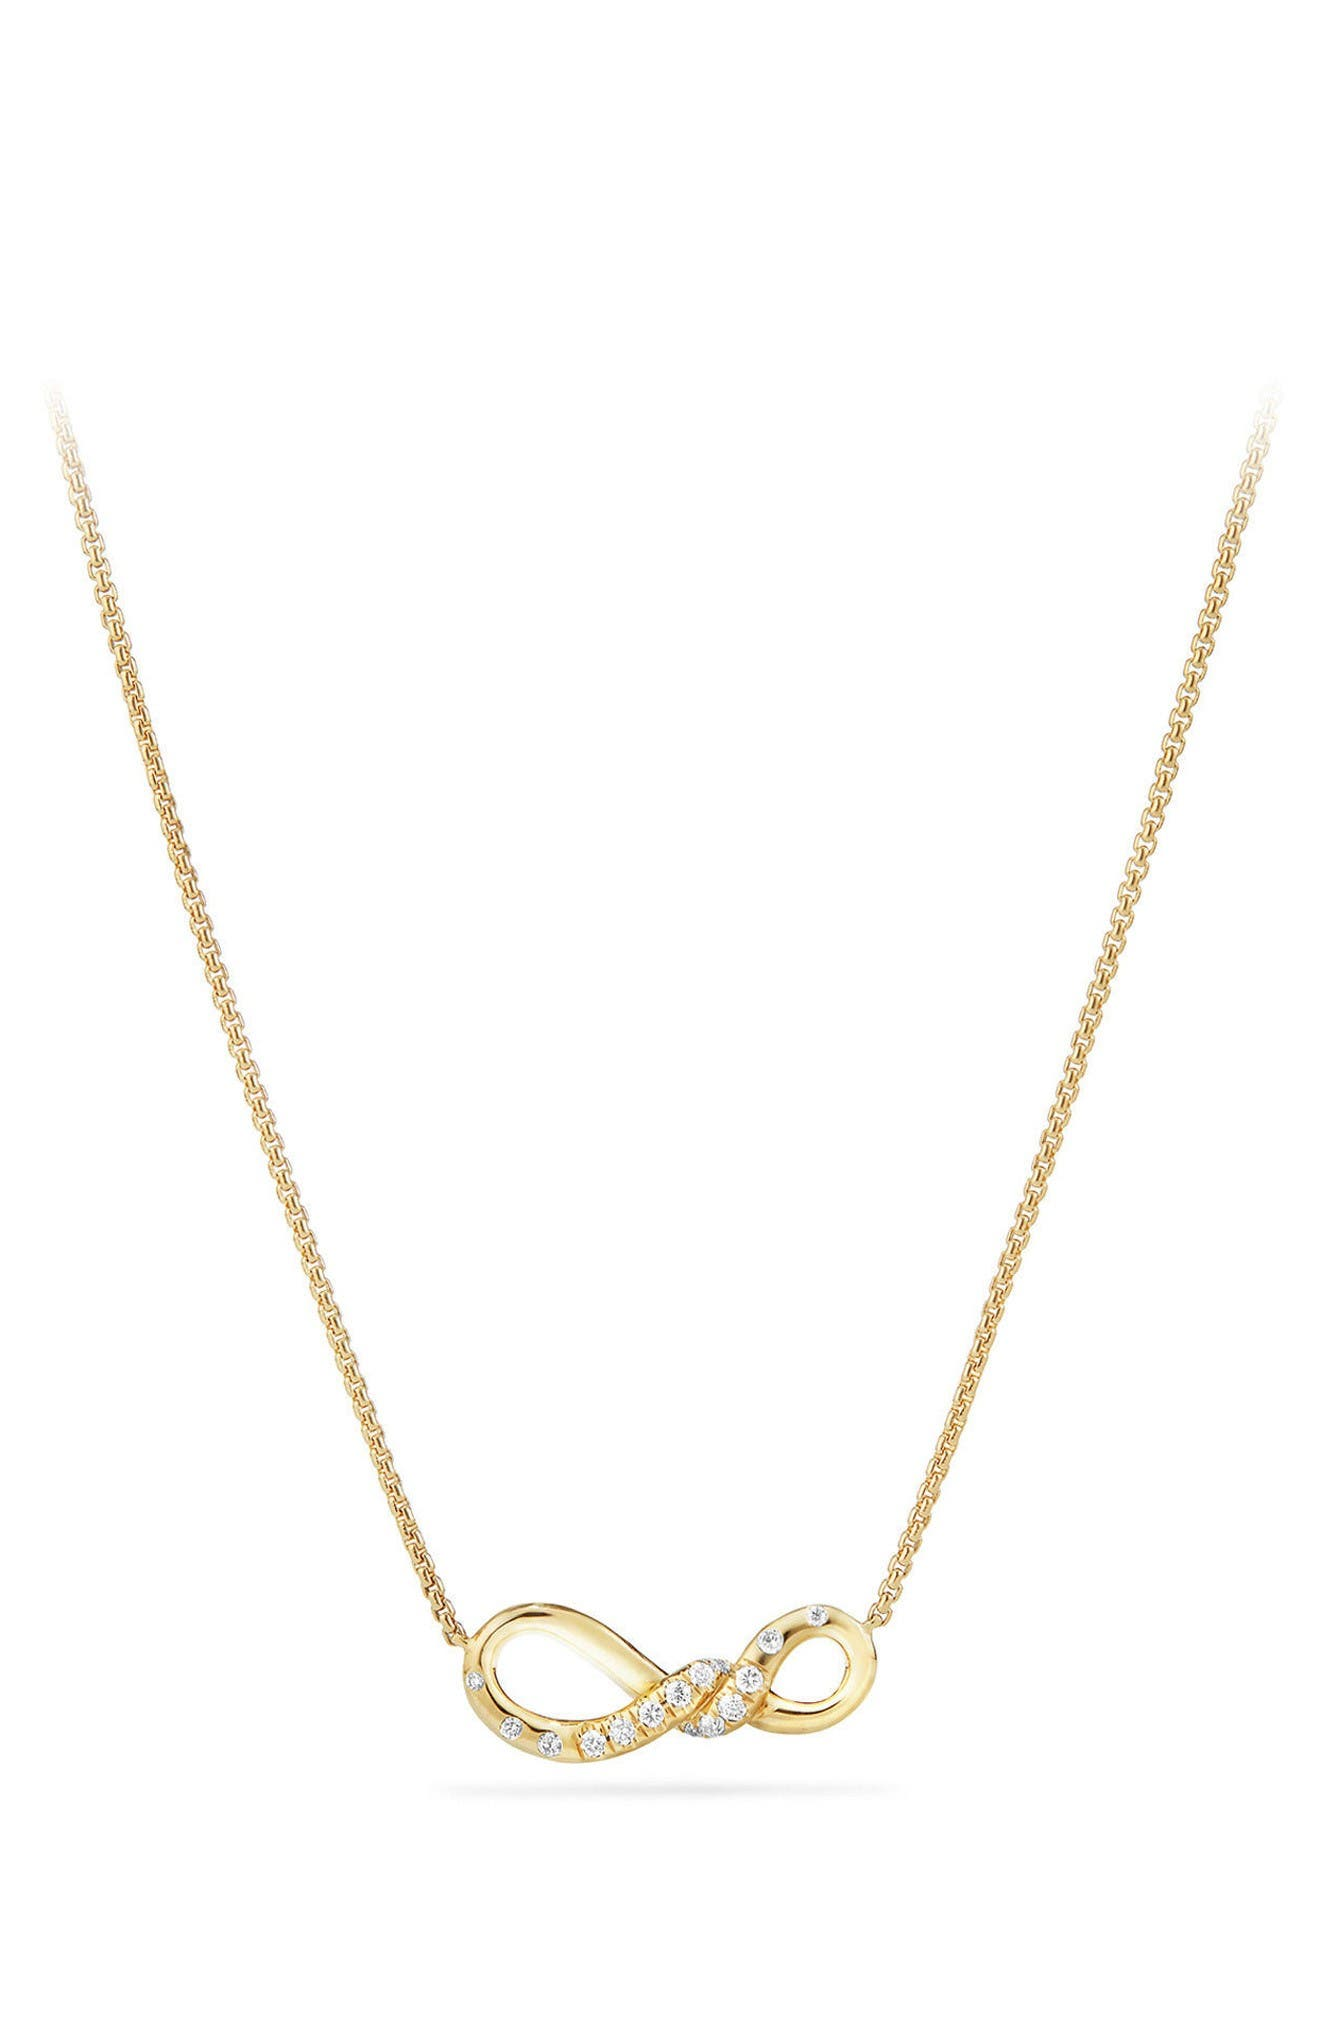 Main Image - David Yurman Continuance Pendant Necklace in 18K Gold with Diamonds